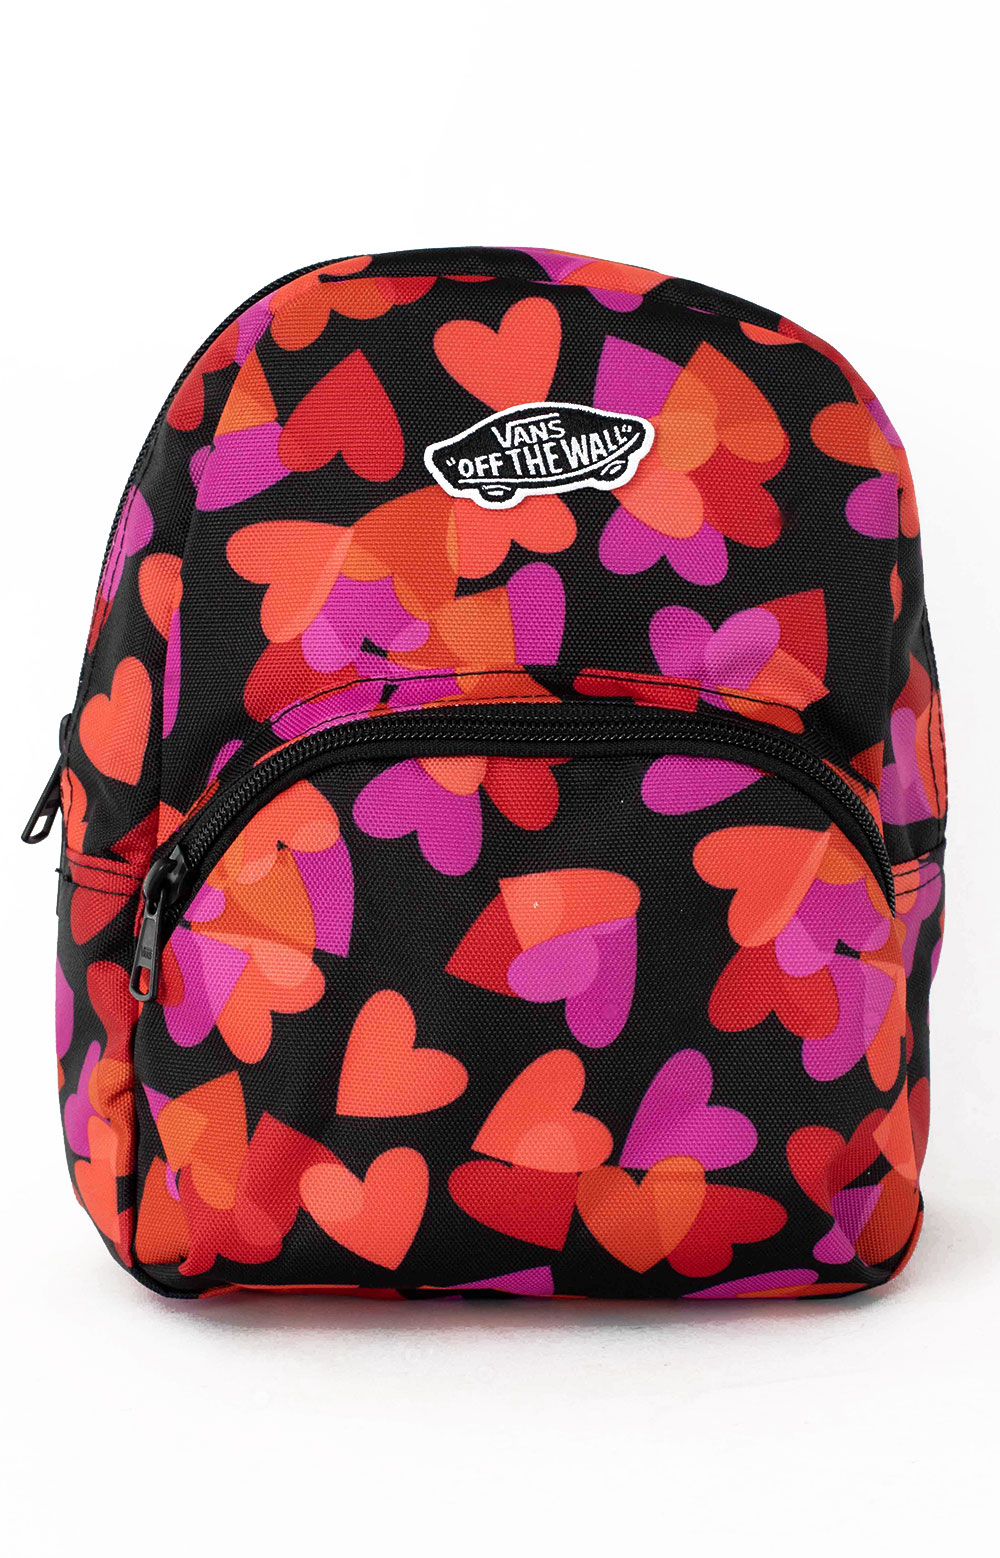 Got This Mini Backpack - Valentines